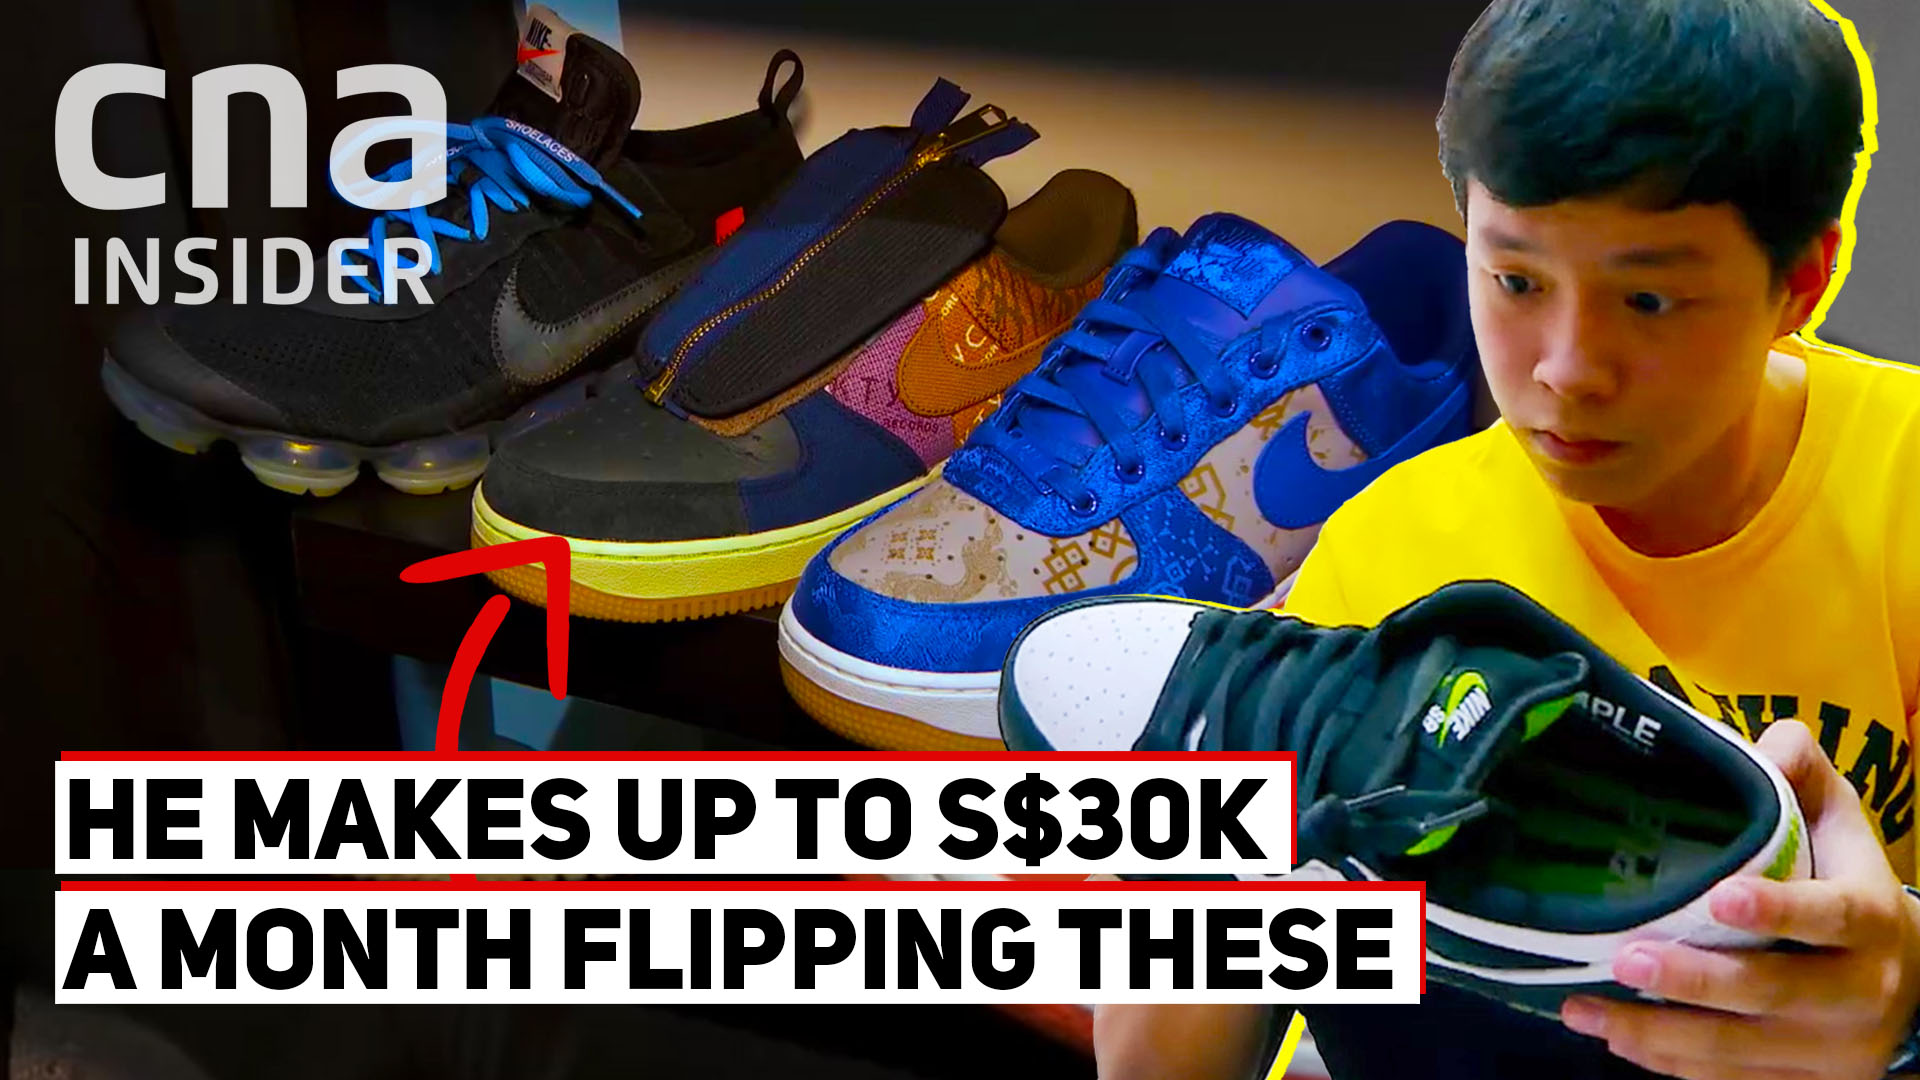 16-year-old makes up to S$30k a month flipping sneakers